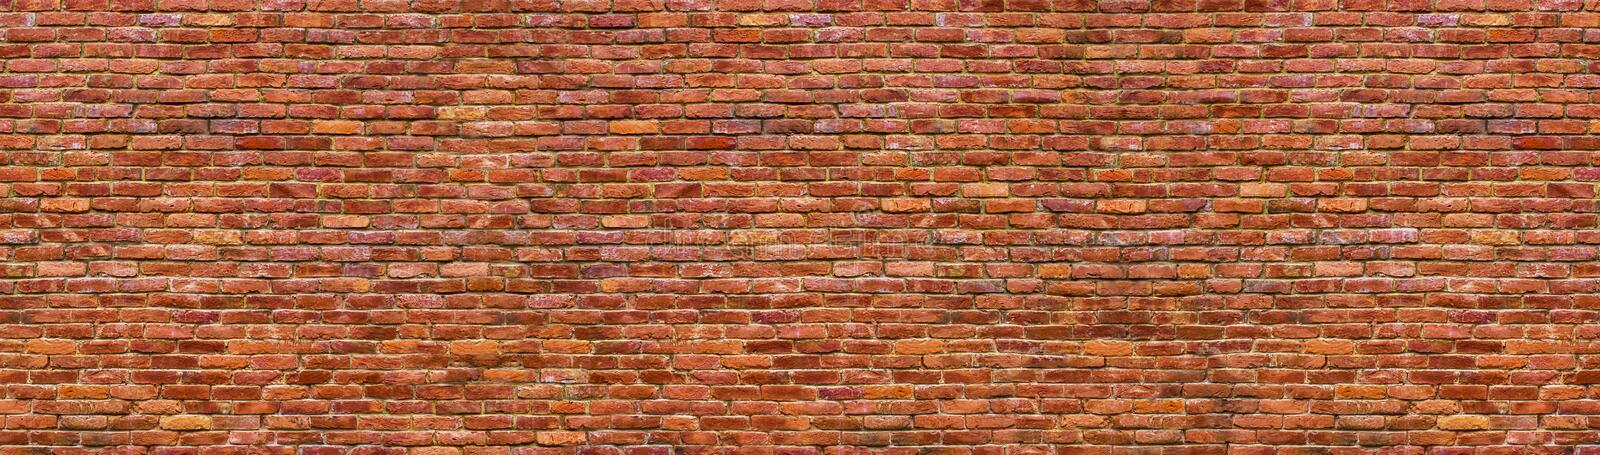 Grunge brick wall, old brickwork panoramic view stock image